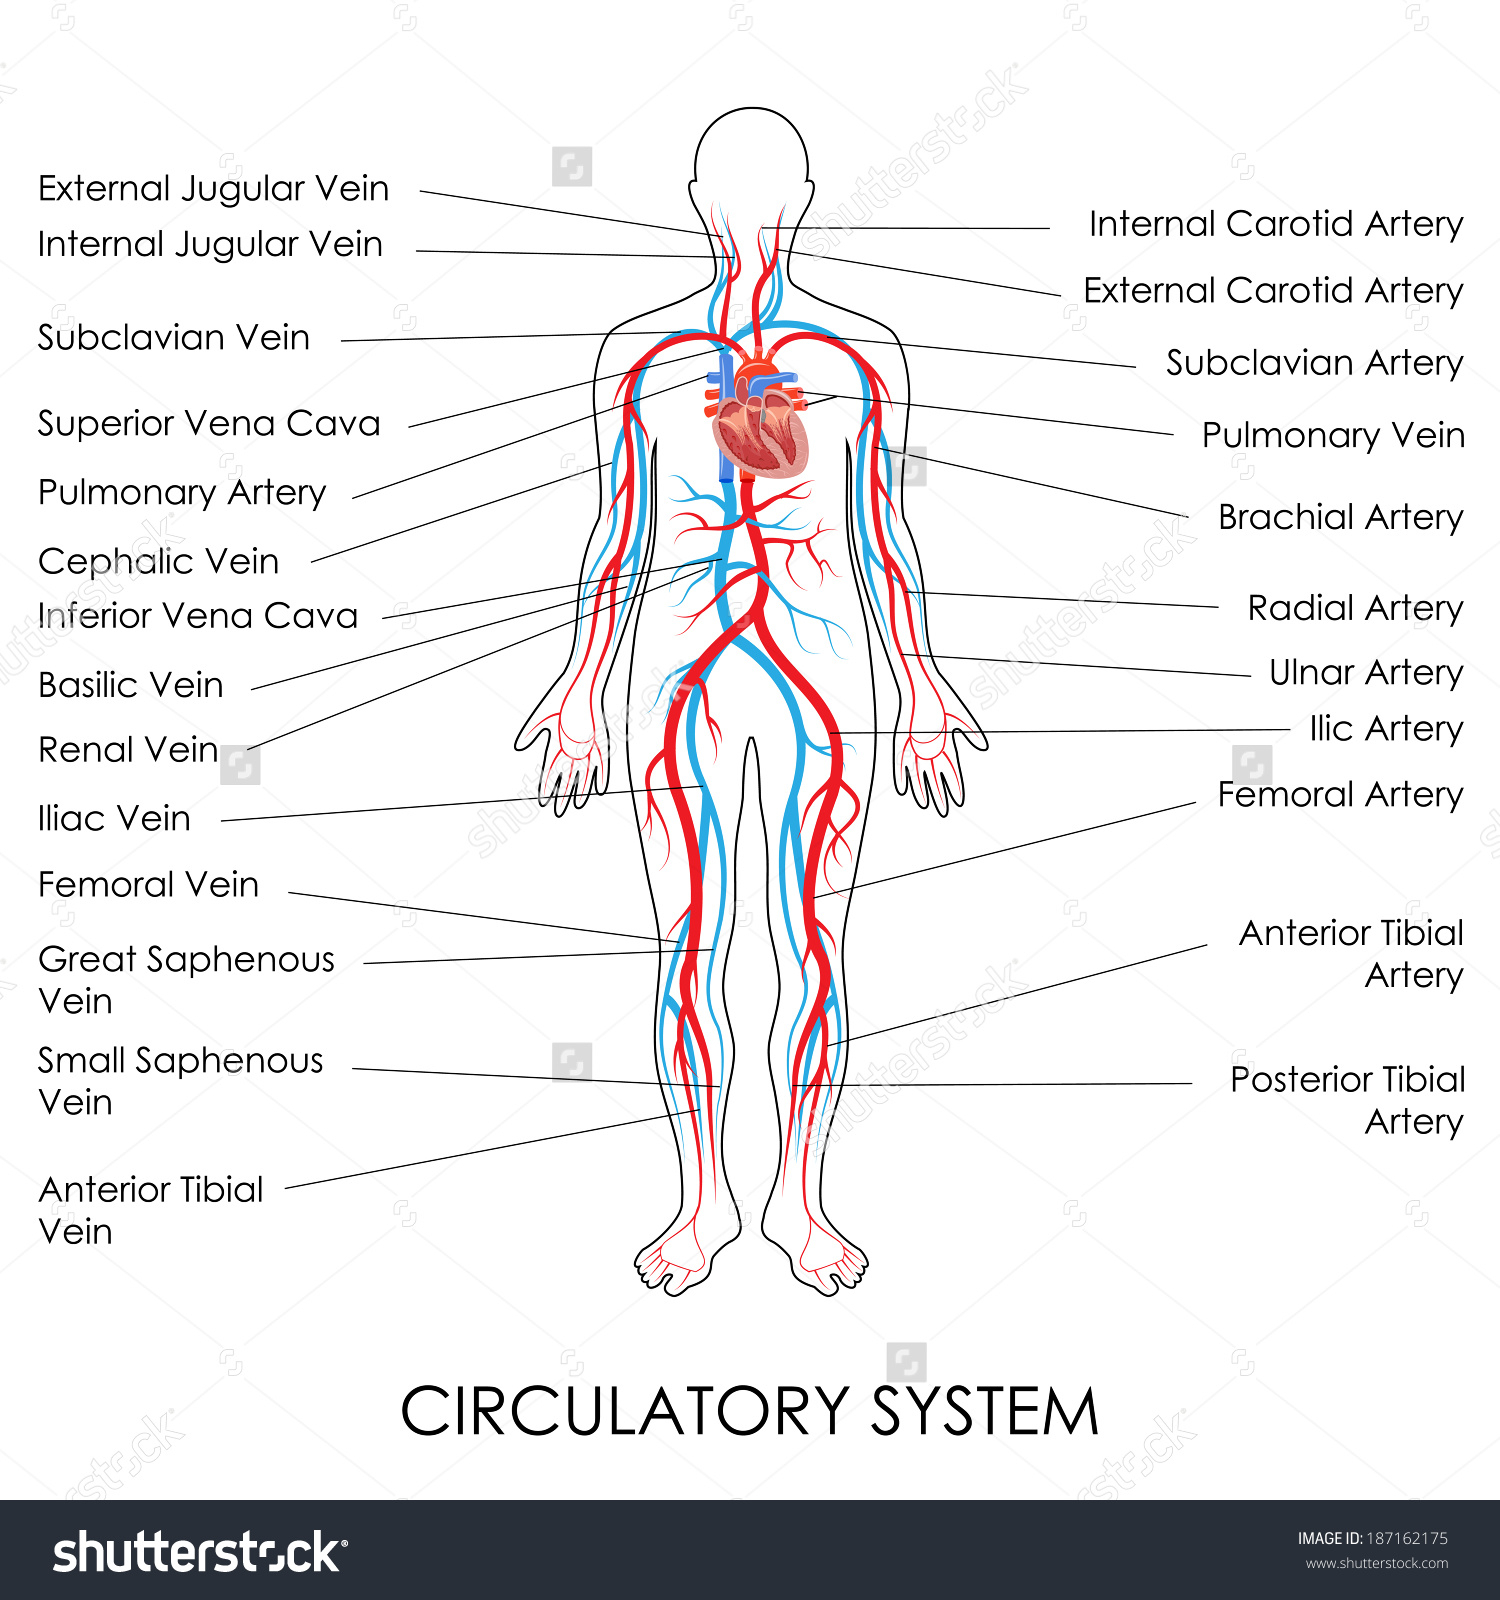 how to draw a system diagram 2006 chevy impala stereo wiring circulatory drawing at getdrawings free for